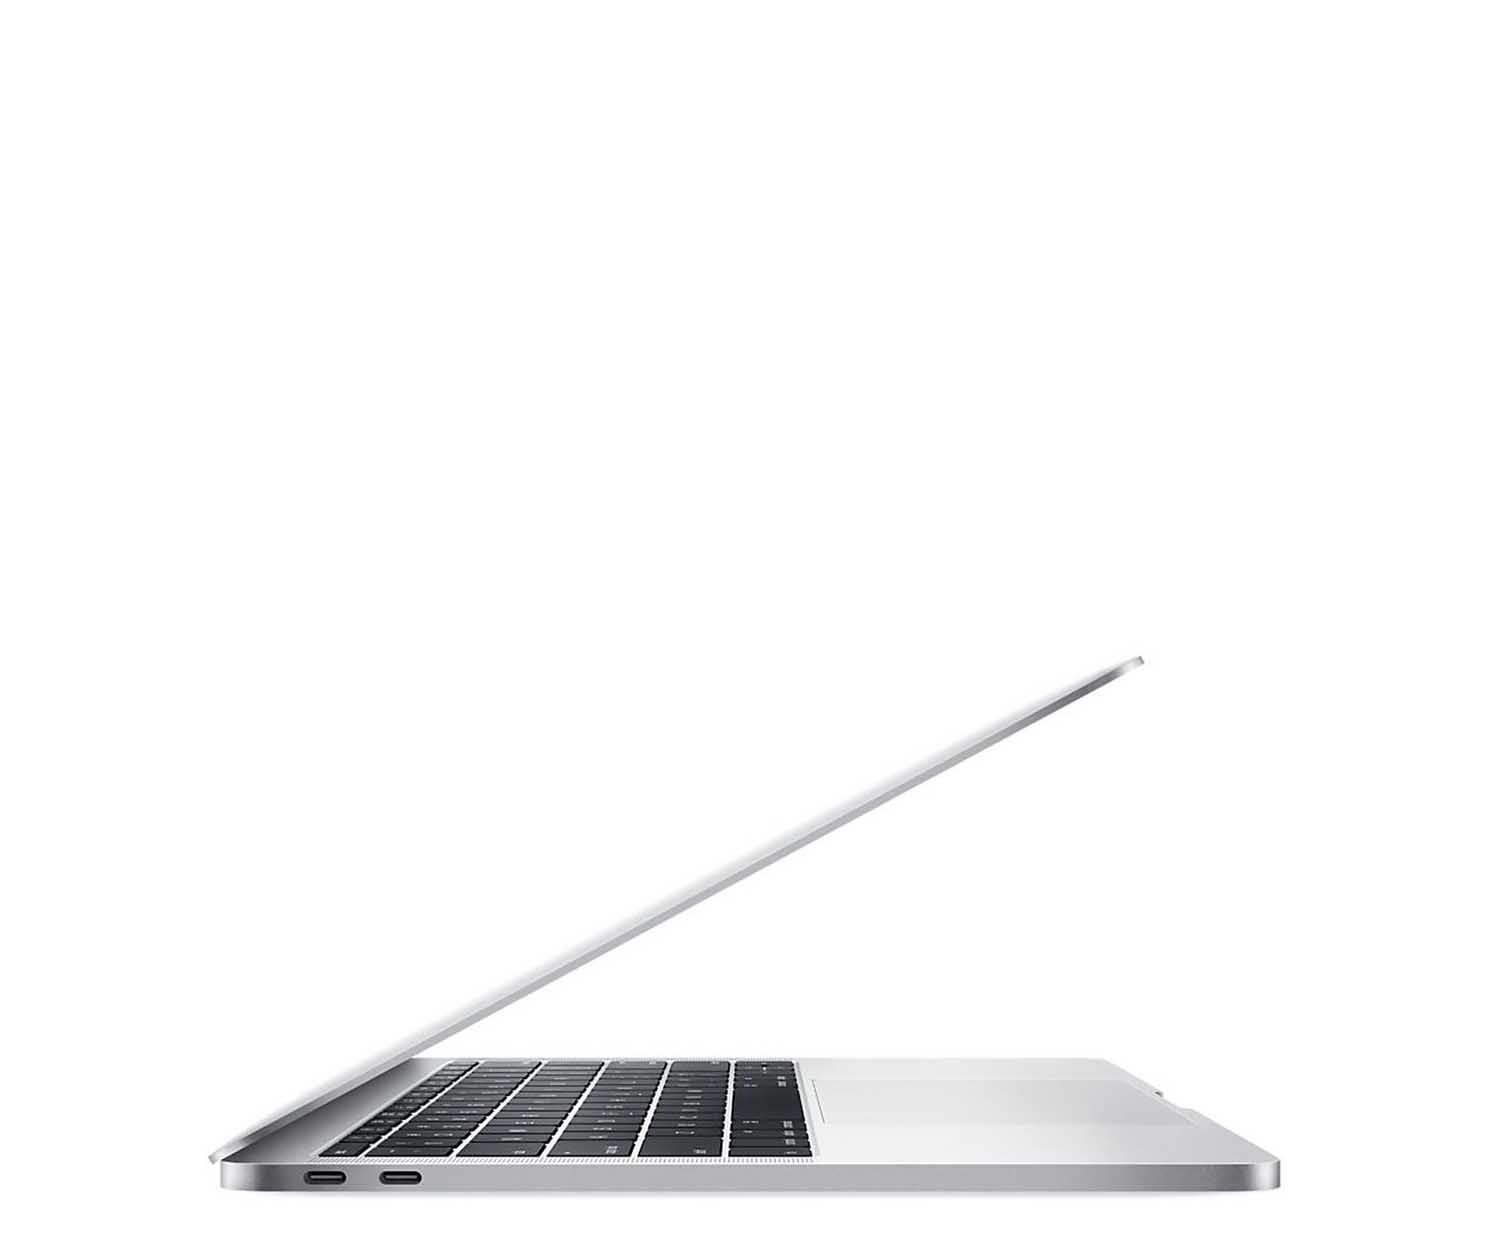 macbook pro 13 mit touch bar 3 5 ghz core i7 256 gb ssd. Black Bedroom Furniture Sets. Home Design Ideas